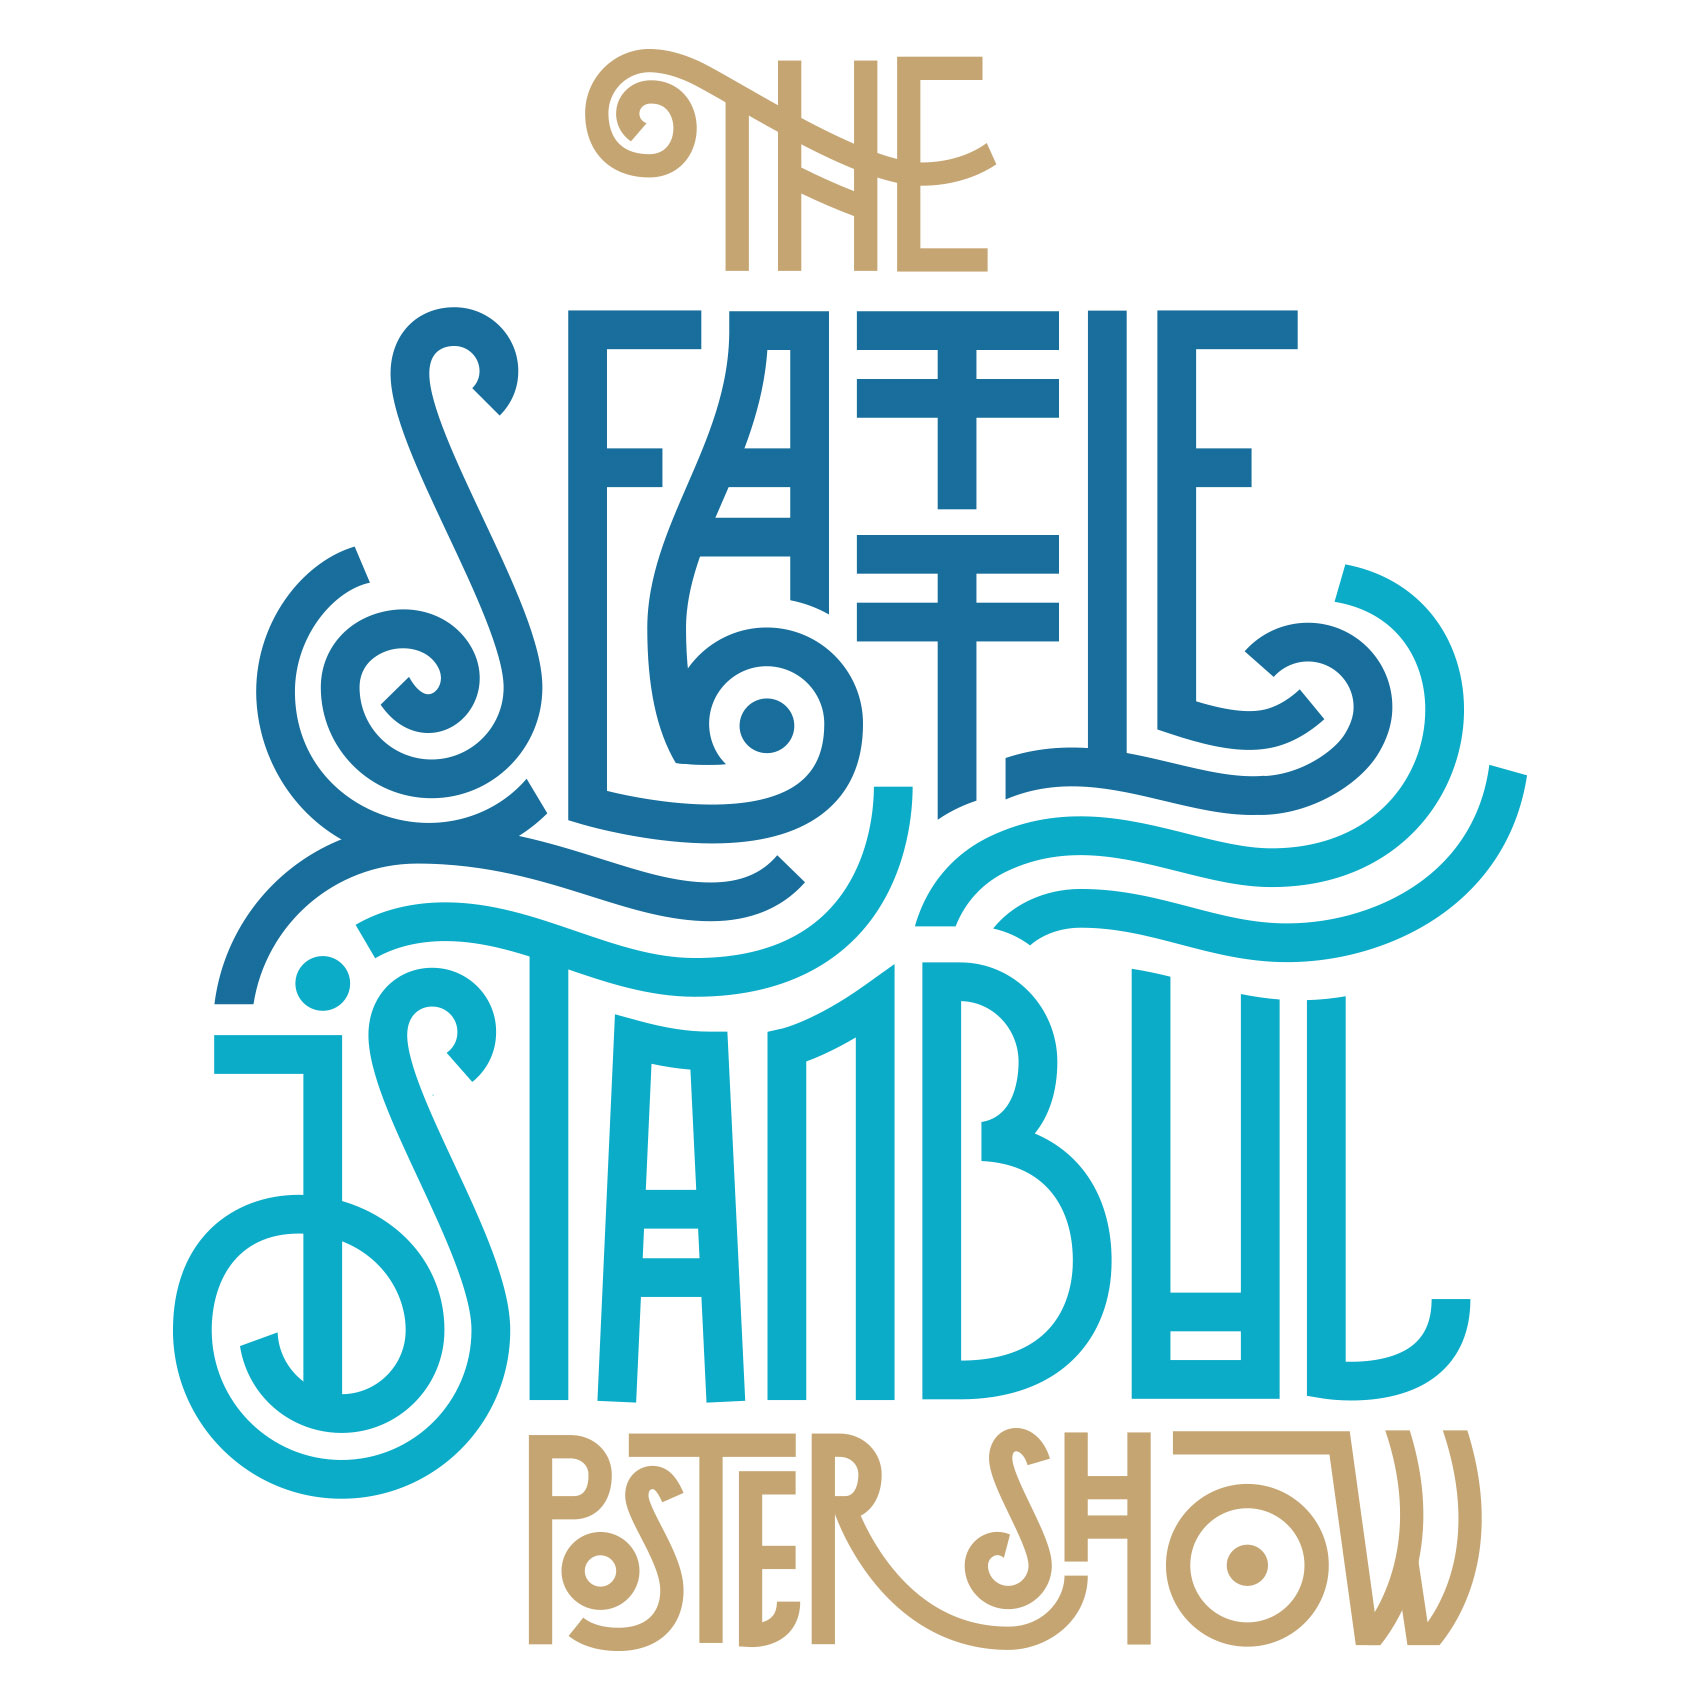 Logo for the Seattle Istanbul poster show